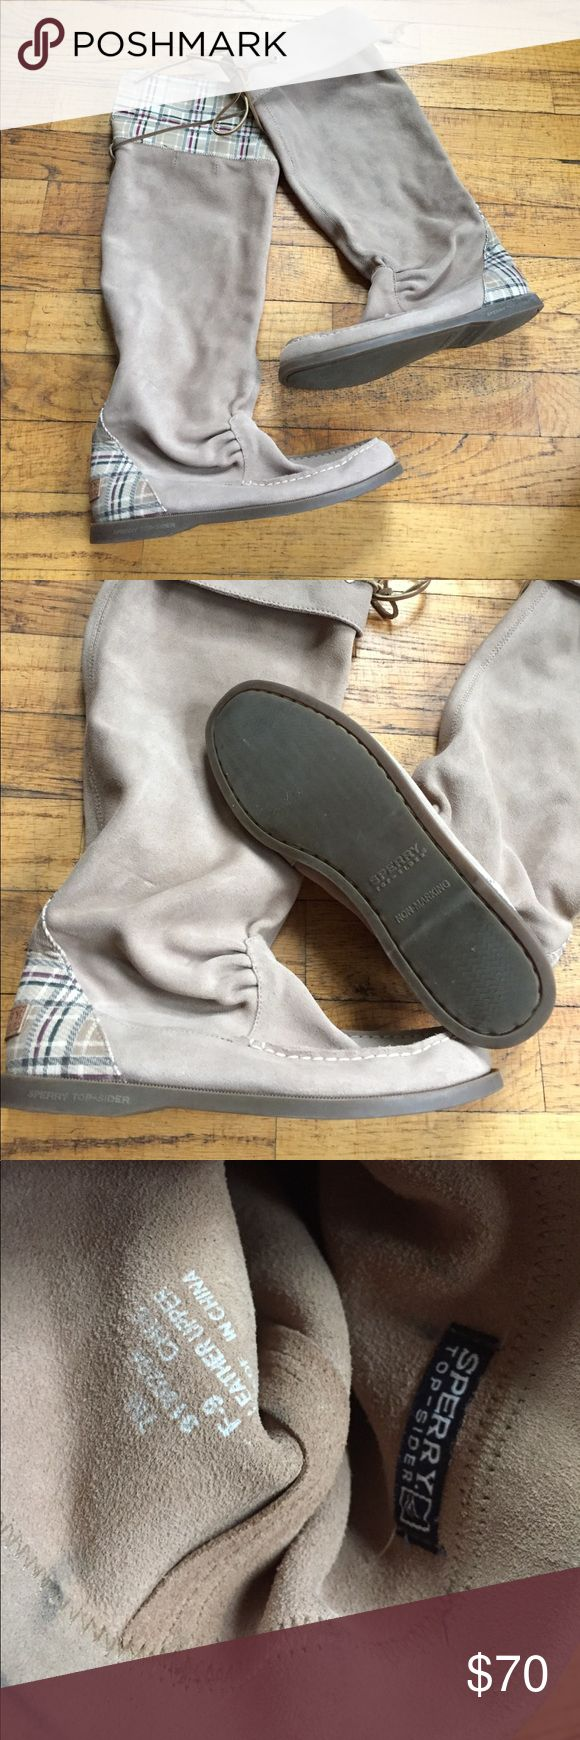 Skerry Top-Sider boat boots Fun and rad to find! Leather with a cute plaid heel cover and under cold. Size 7. Sperry Top-Sider Shoes